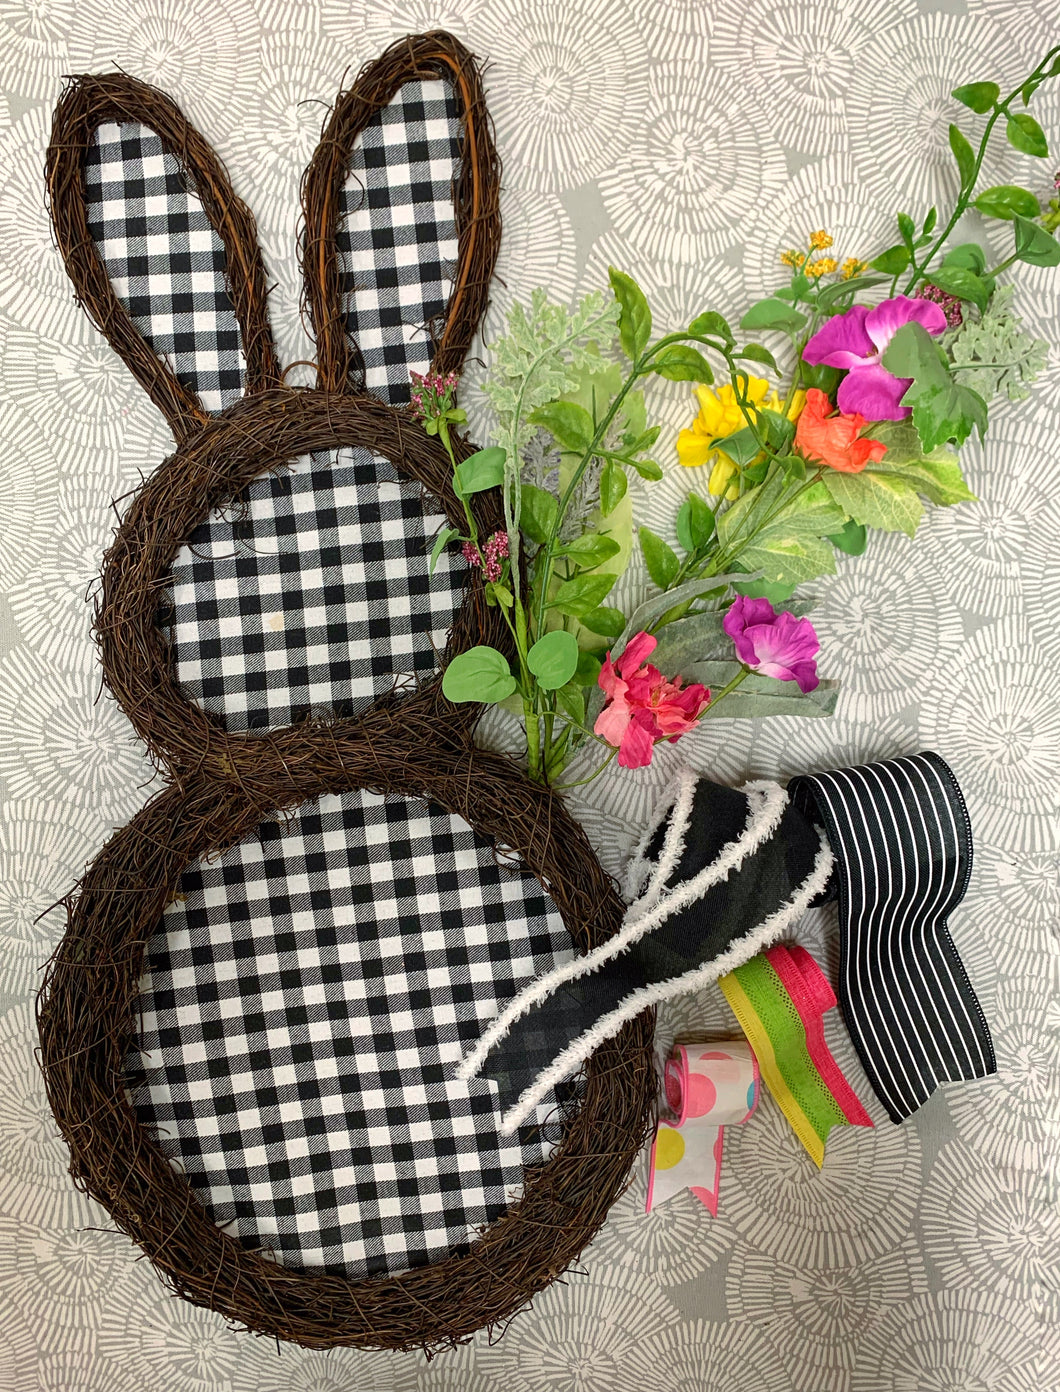 Black & White Check Bunny Hanger Kit